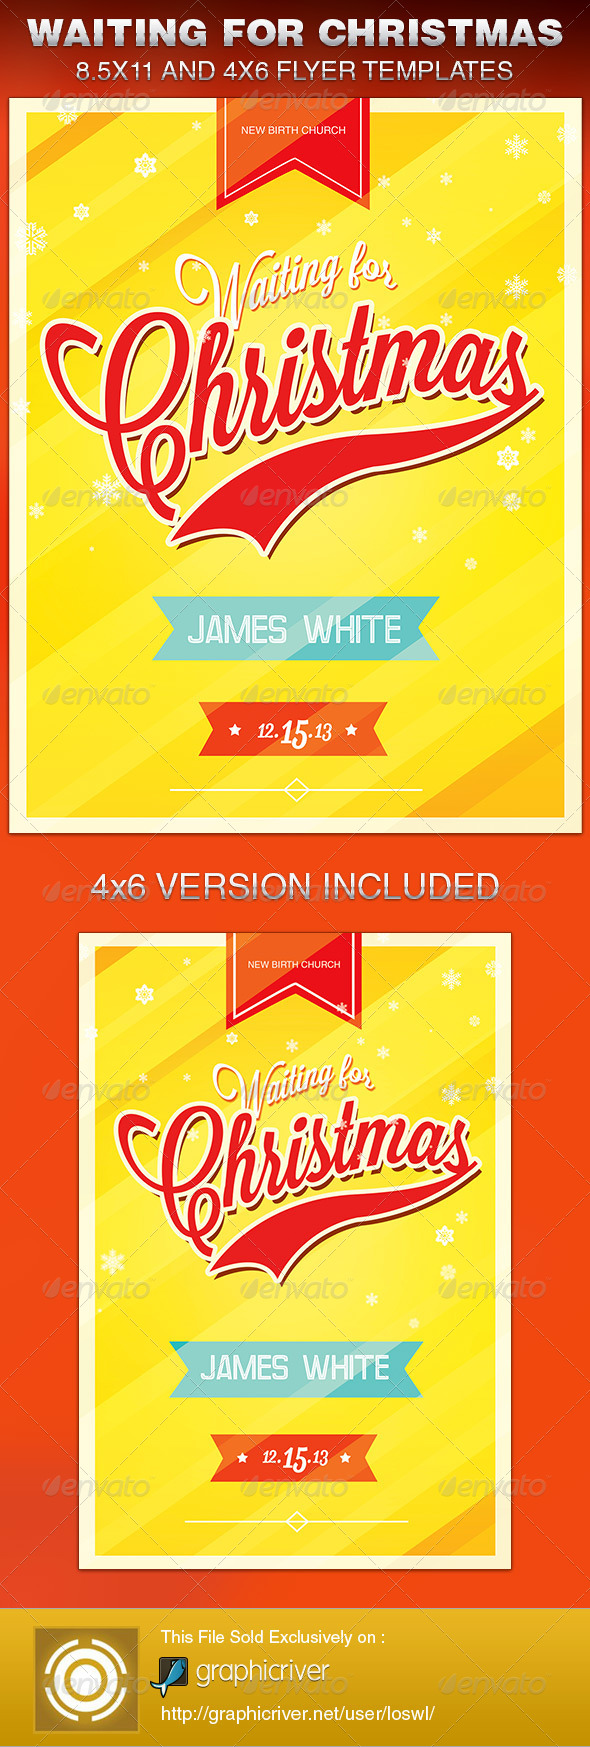 GraphicRiver Waiting for Christmas Church Flyer Template 6347083